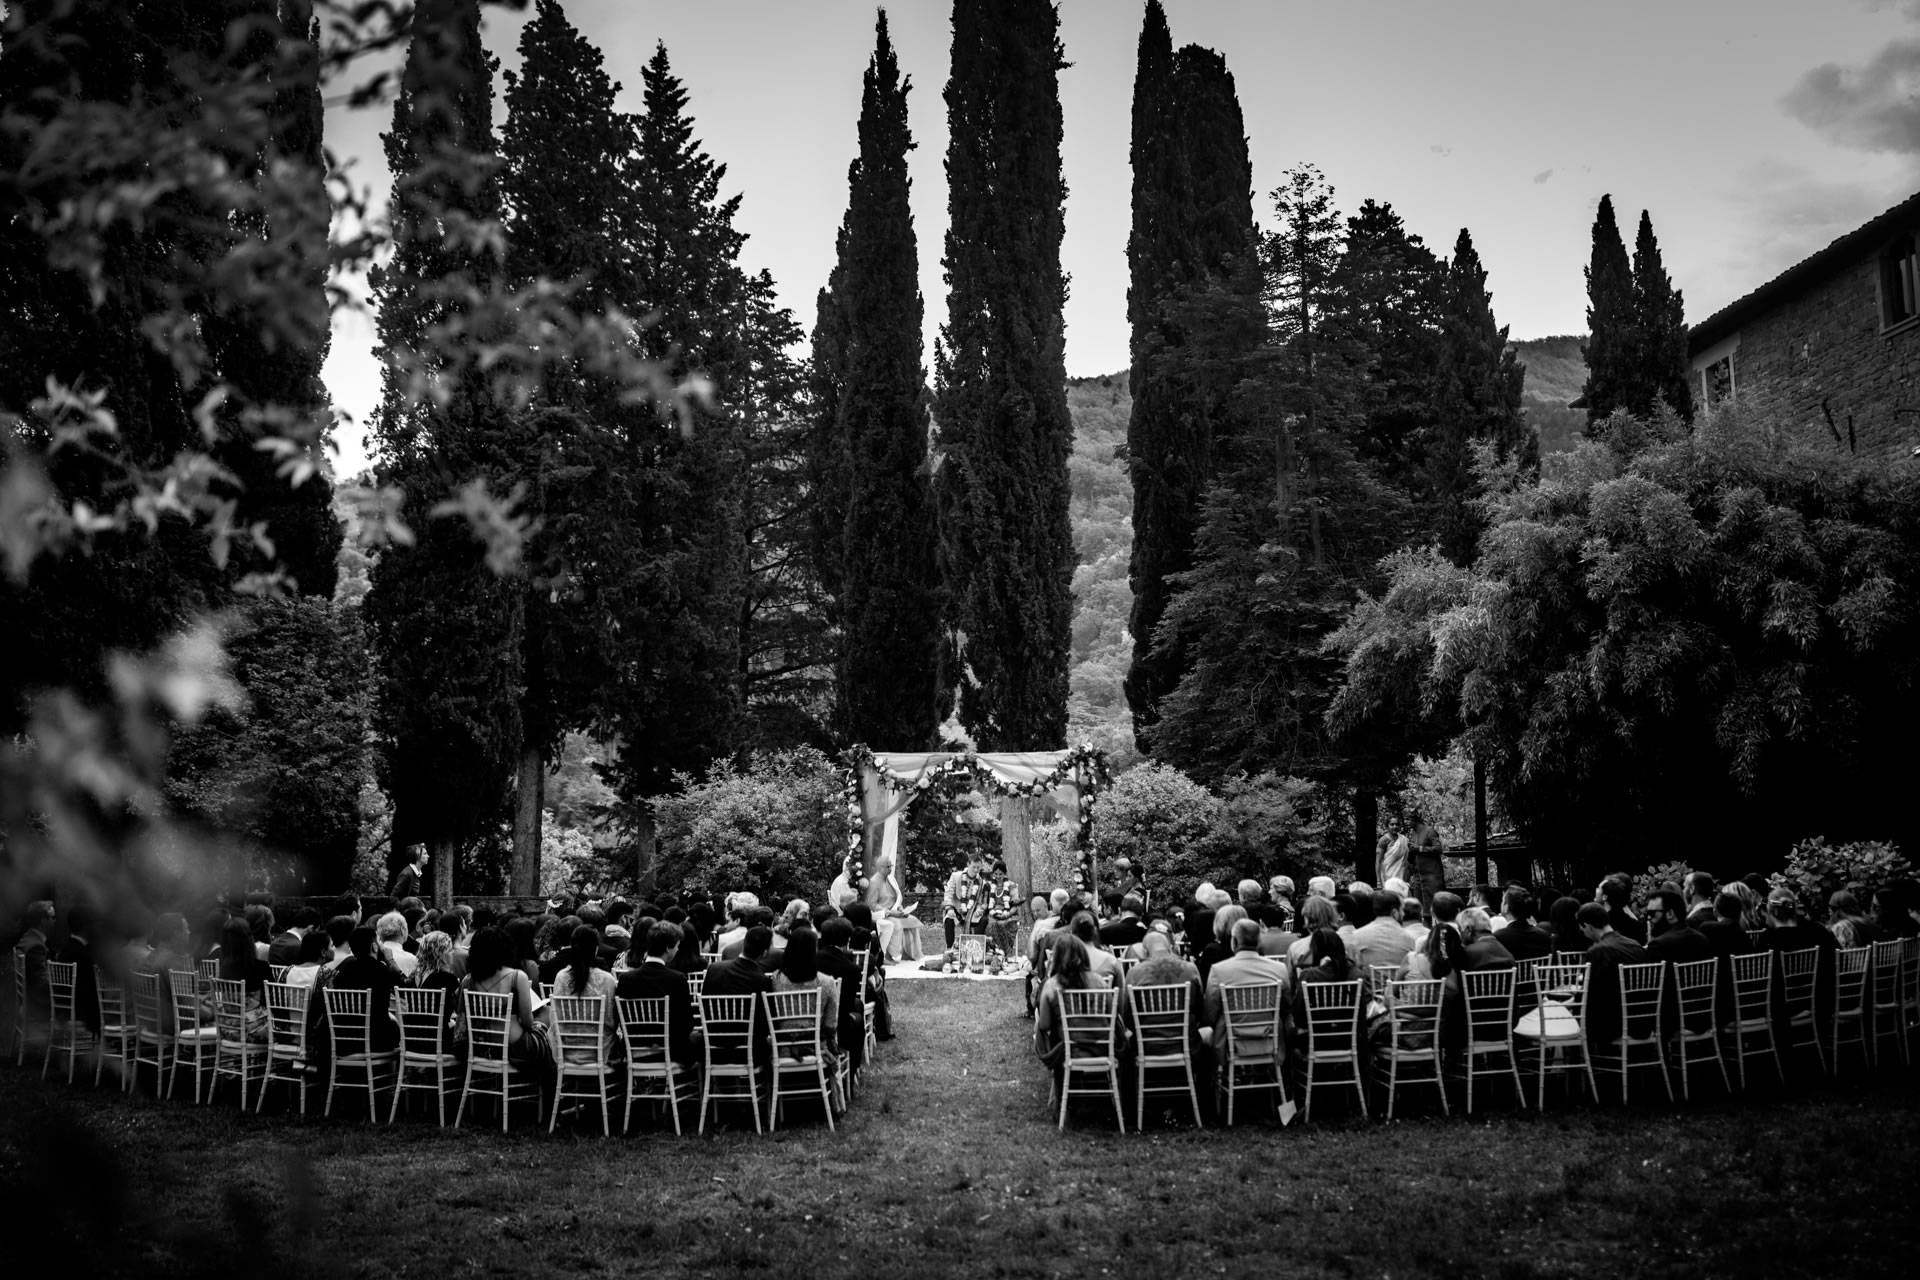 - 22 :: Indian wedding ceremony at Villa Pitiana :: Luxury wedding photography - 21 ::  - 22